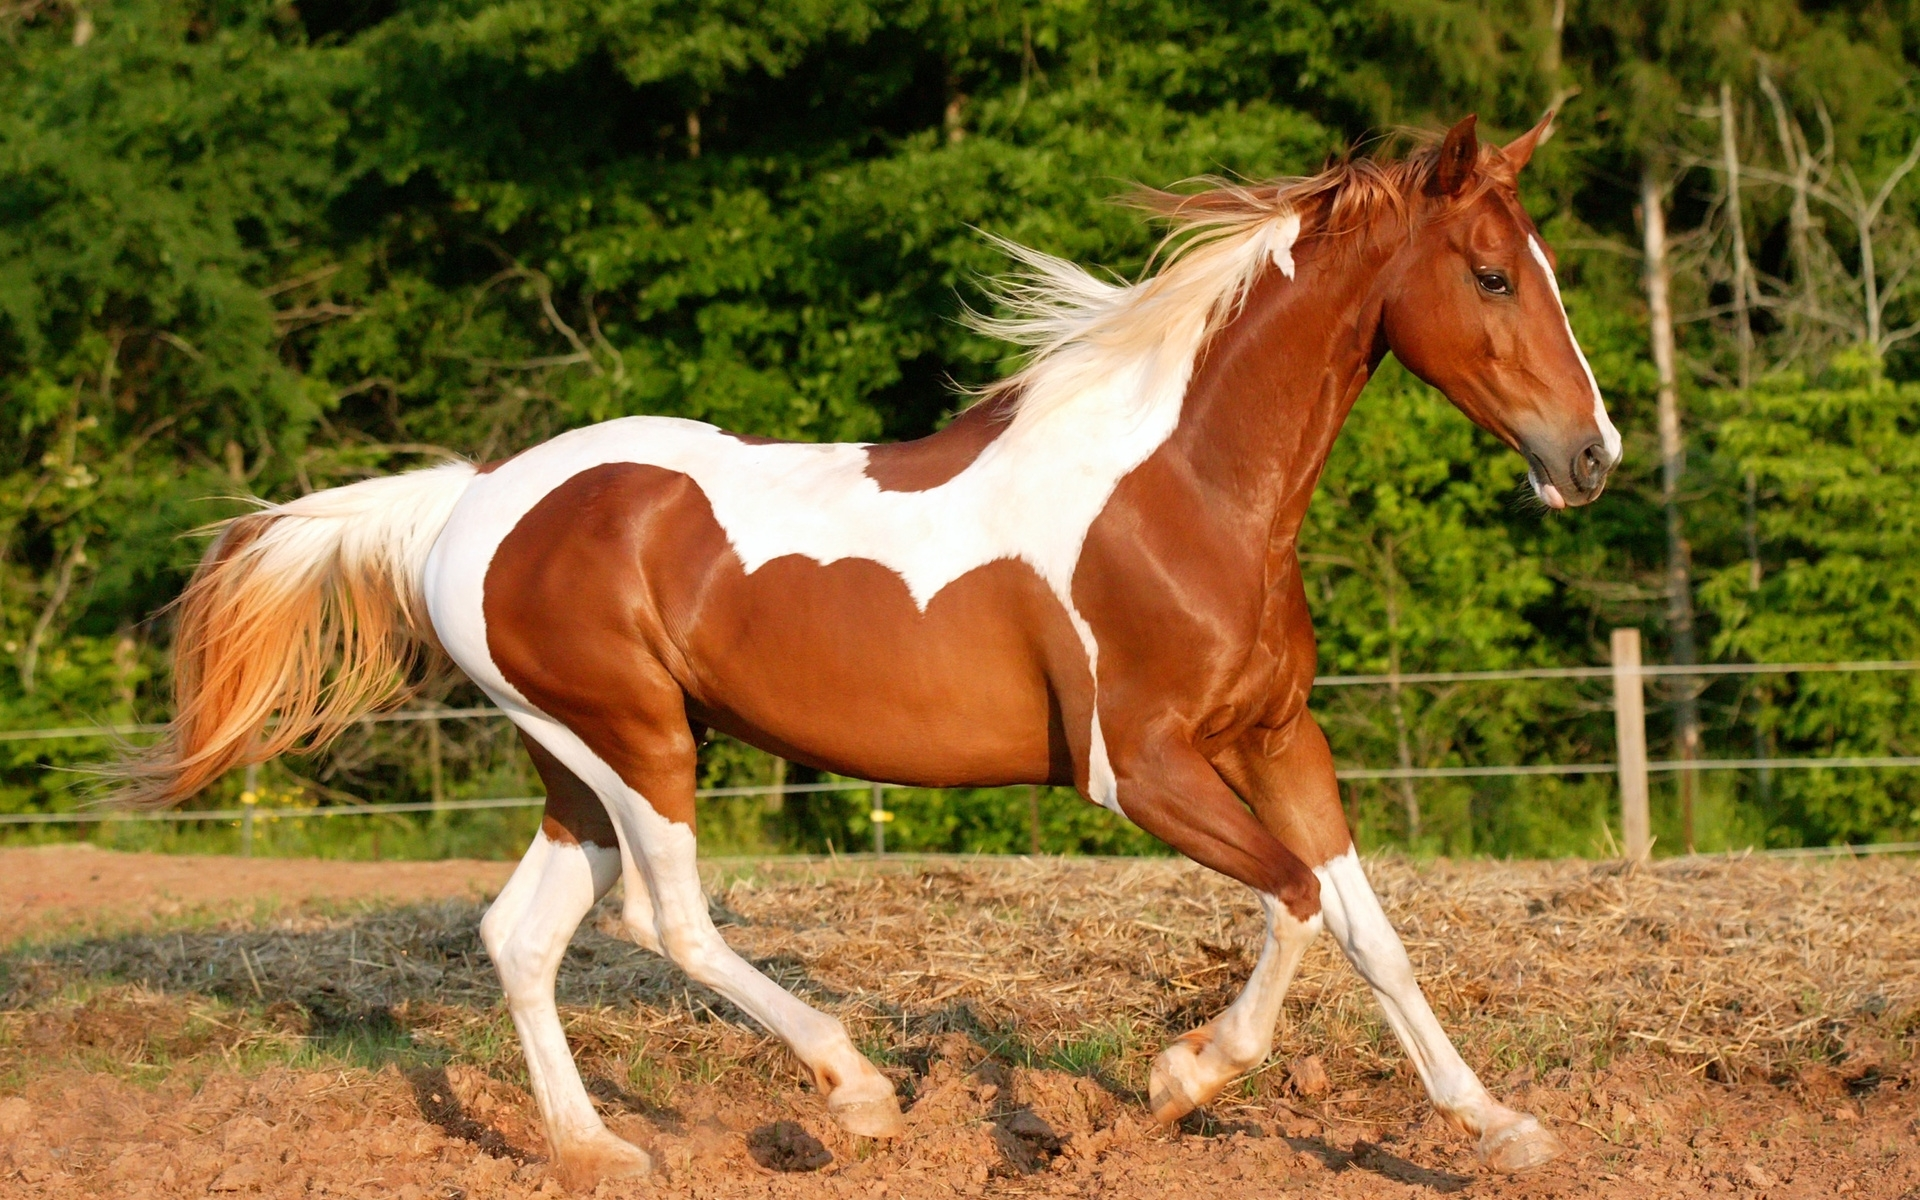 41756 download wallpaper Animals, Horses screensavers and pictures for free